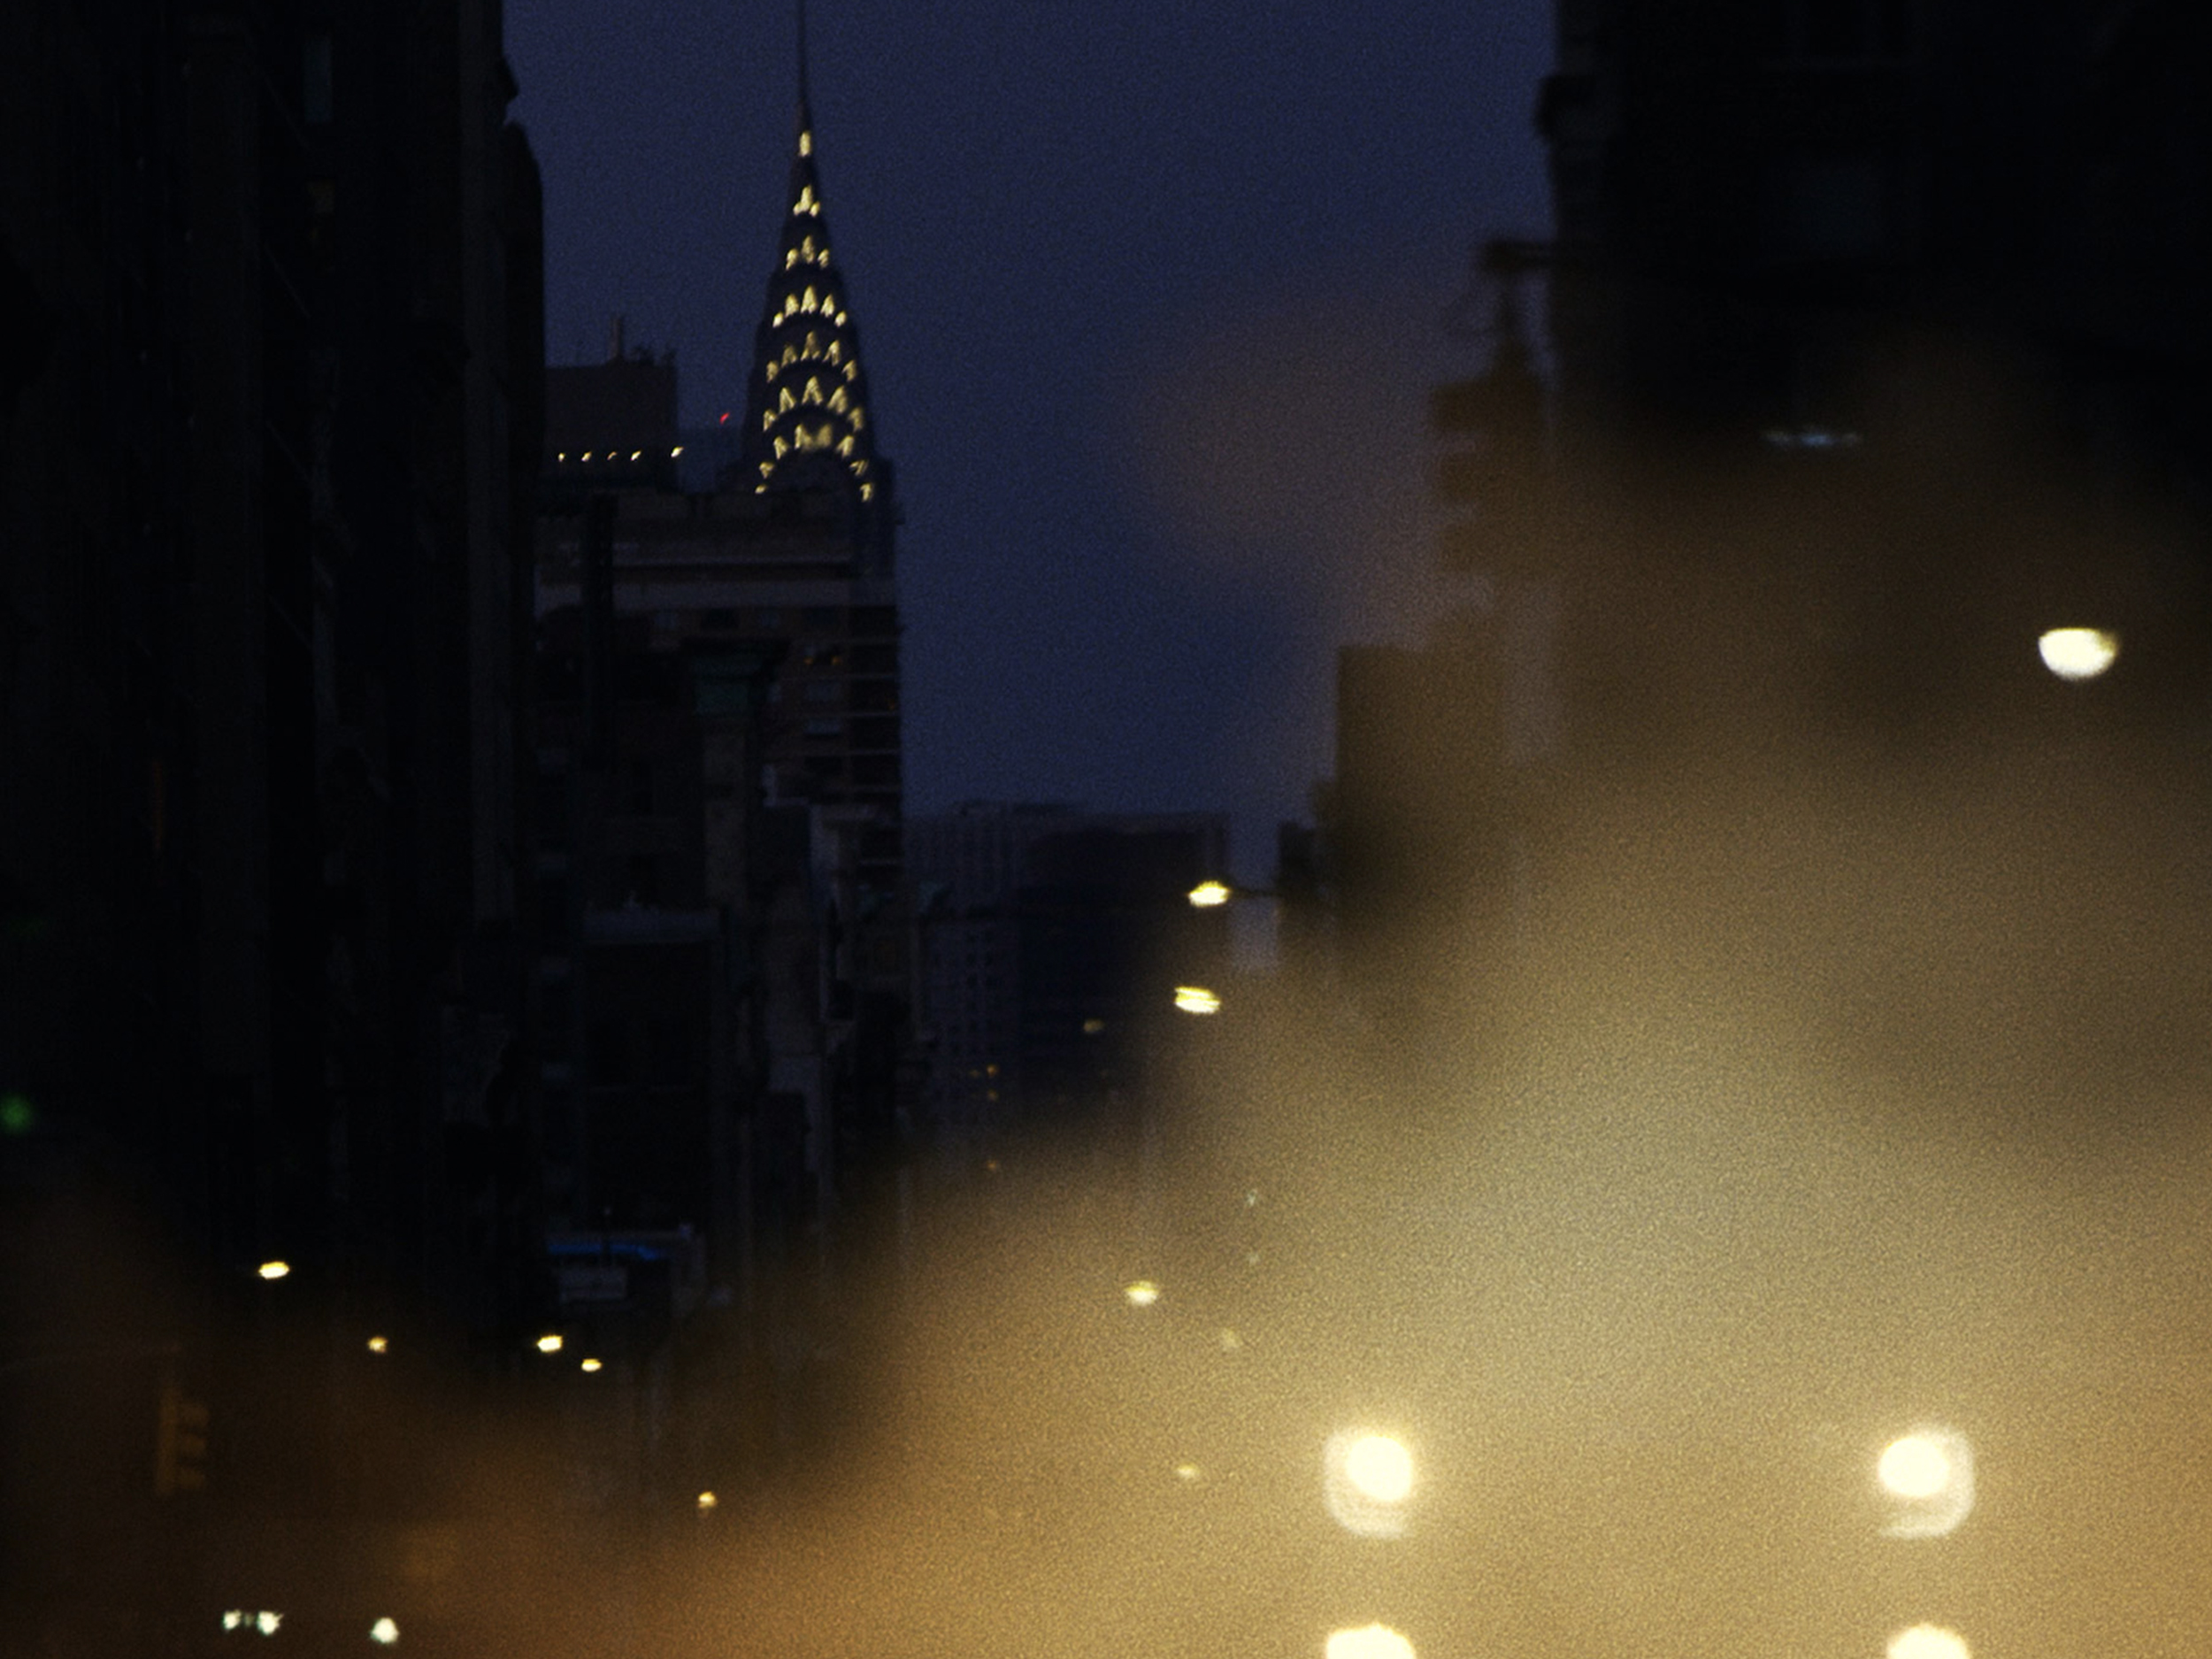 As the city begins to reopen, a tribute to New Yorkers' inimitable resilience